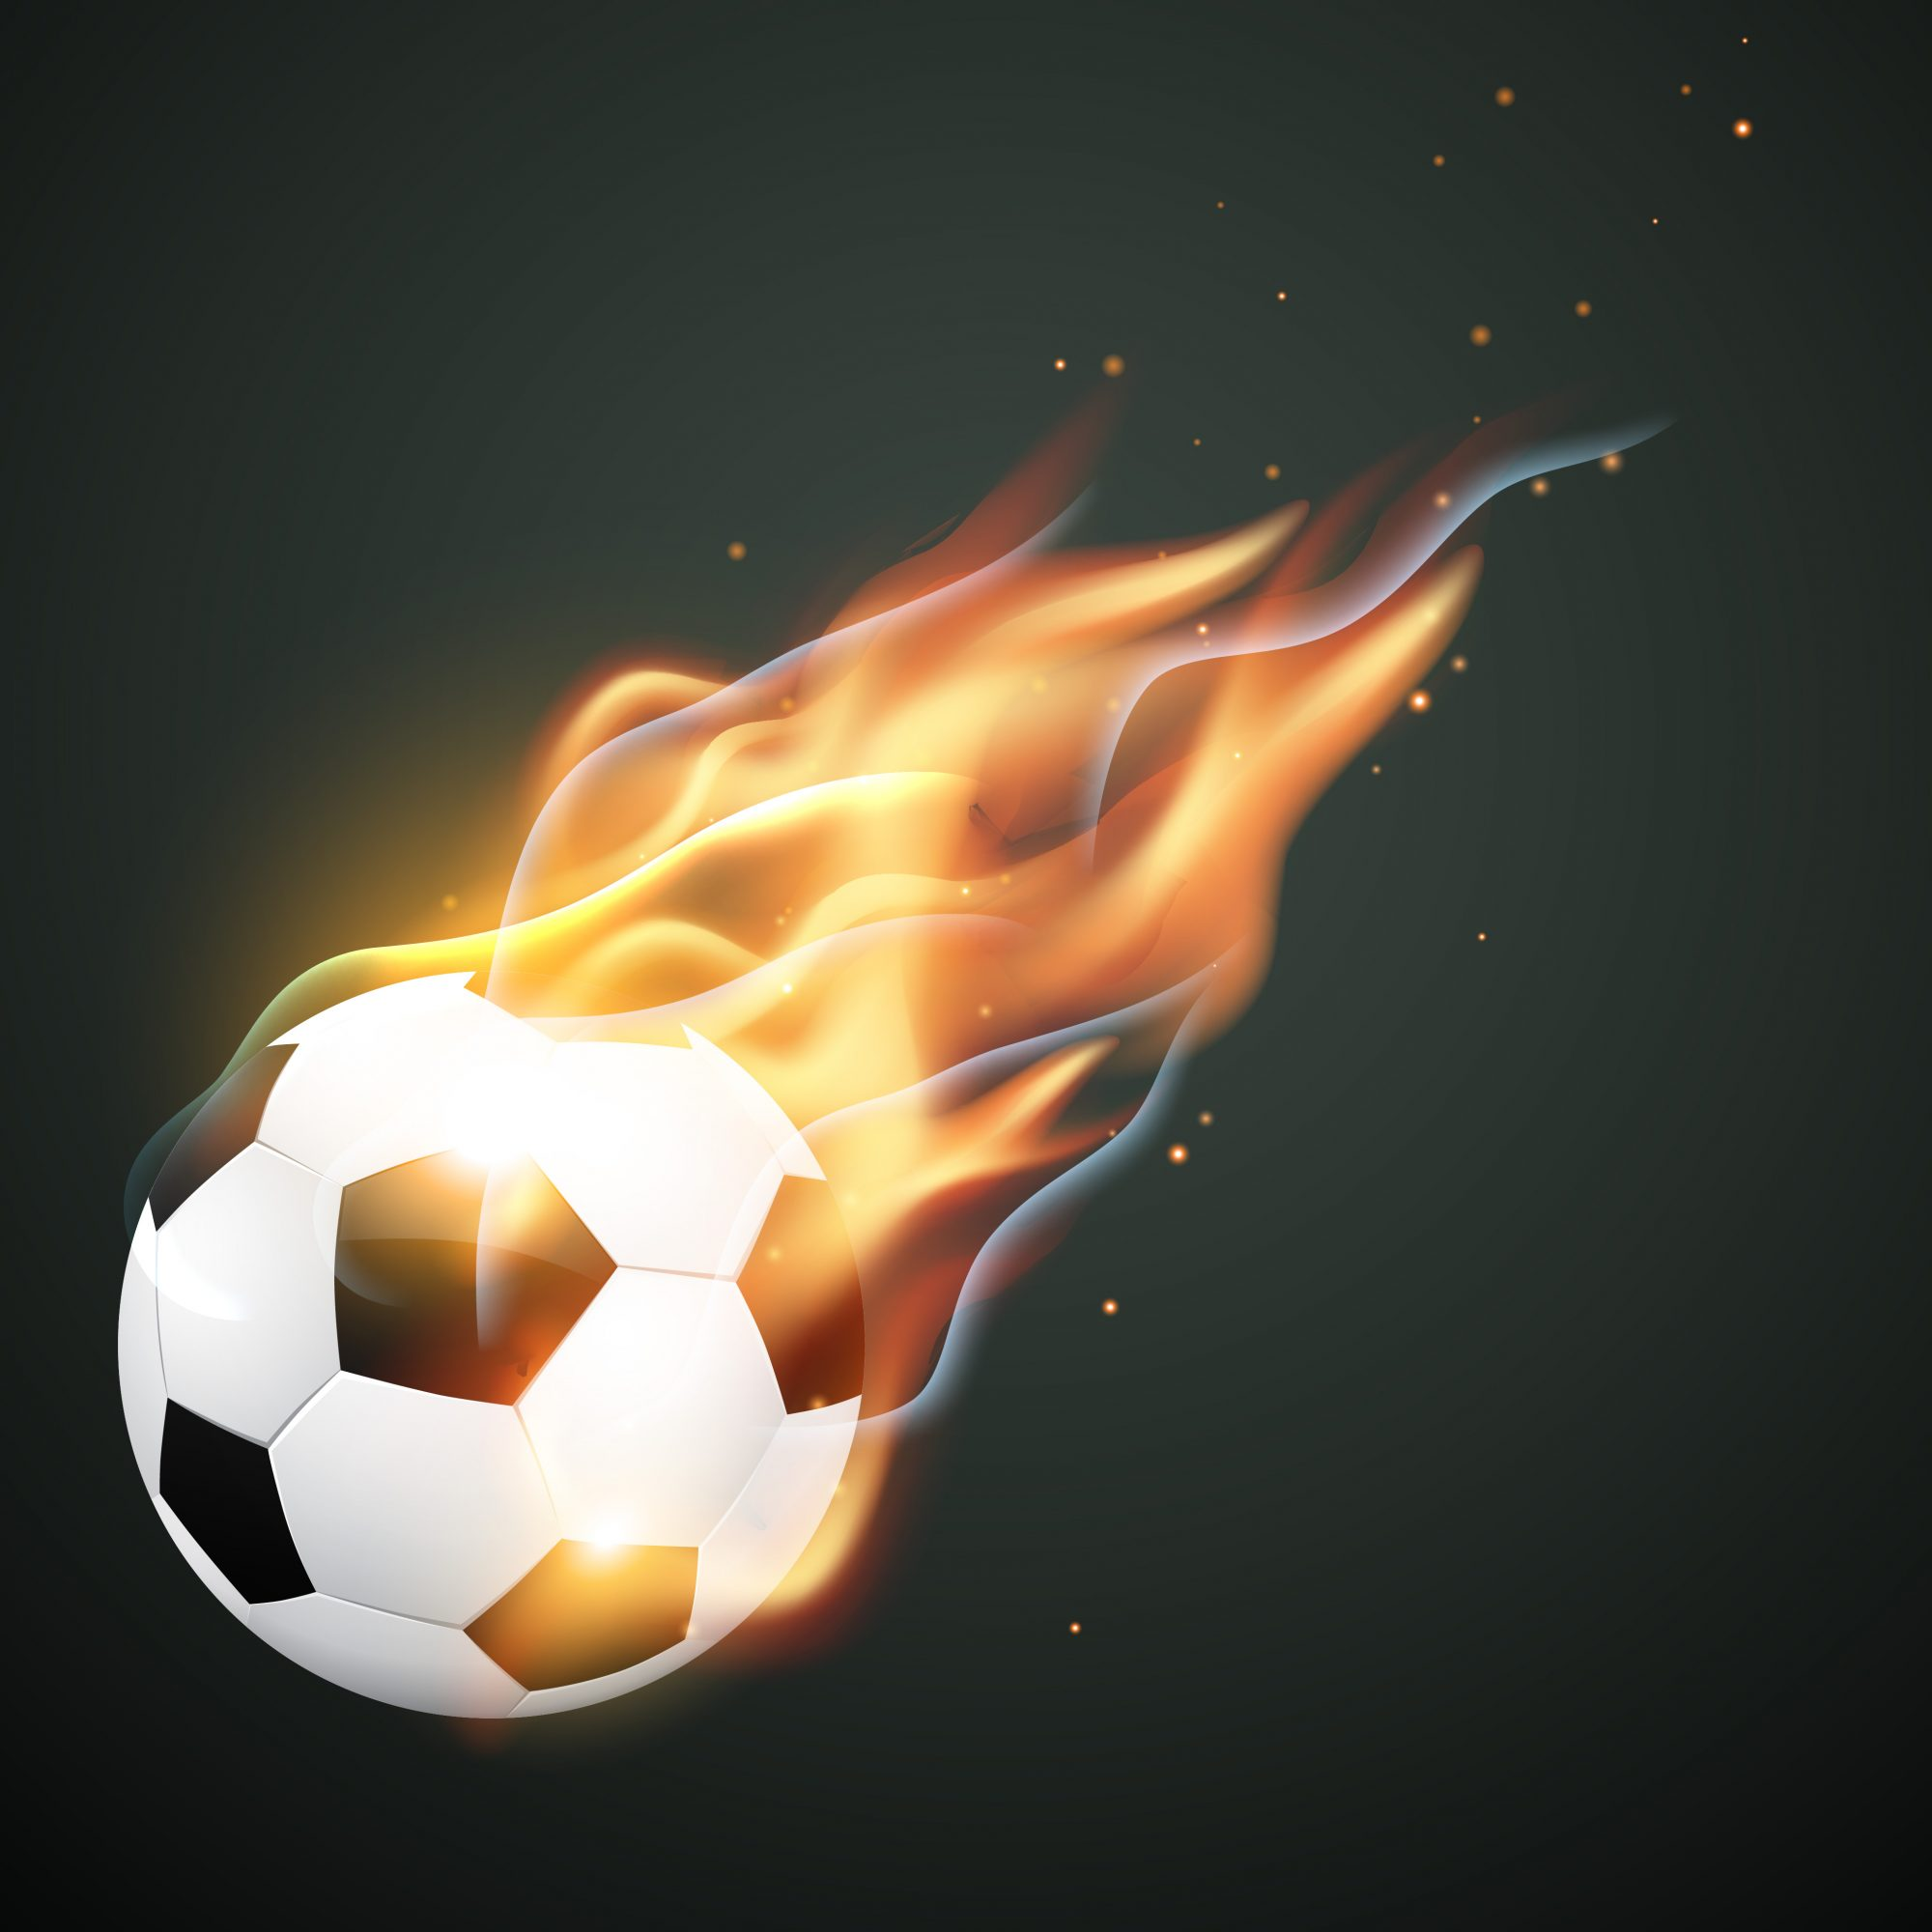 illlustration of burning football